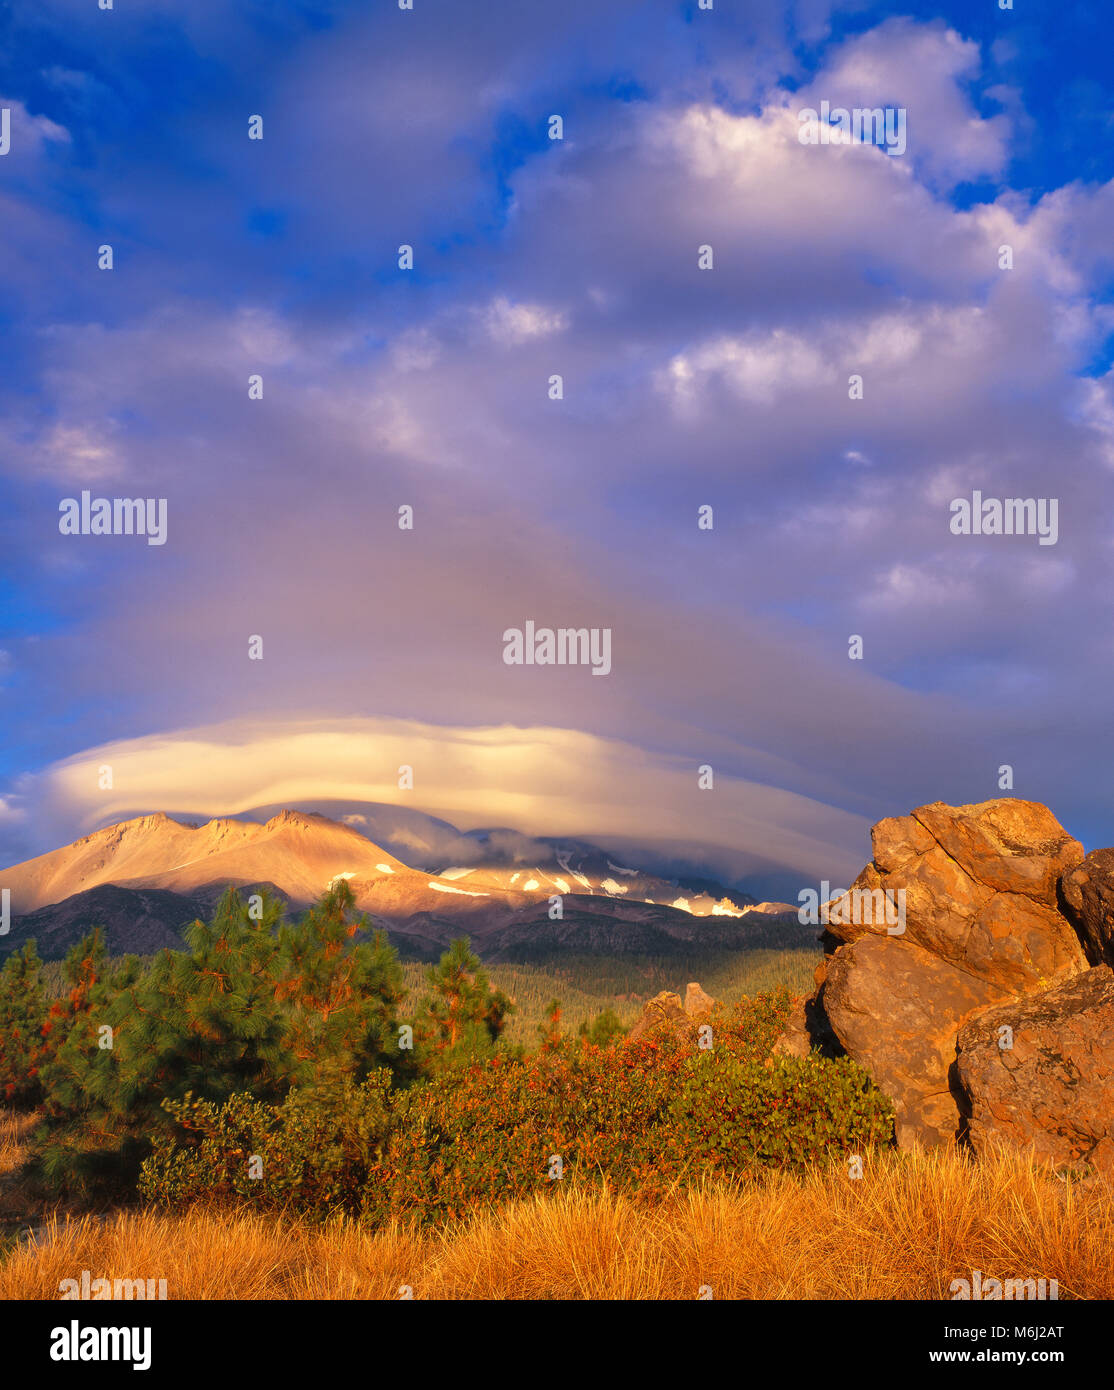 Lenticular Cloud, Shastina, Mount Shasta, Shasta-Trinity National Forest, California - Stock Image